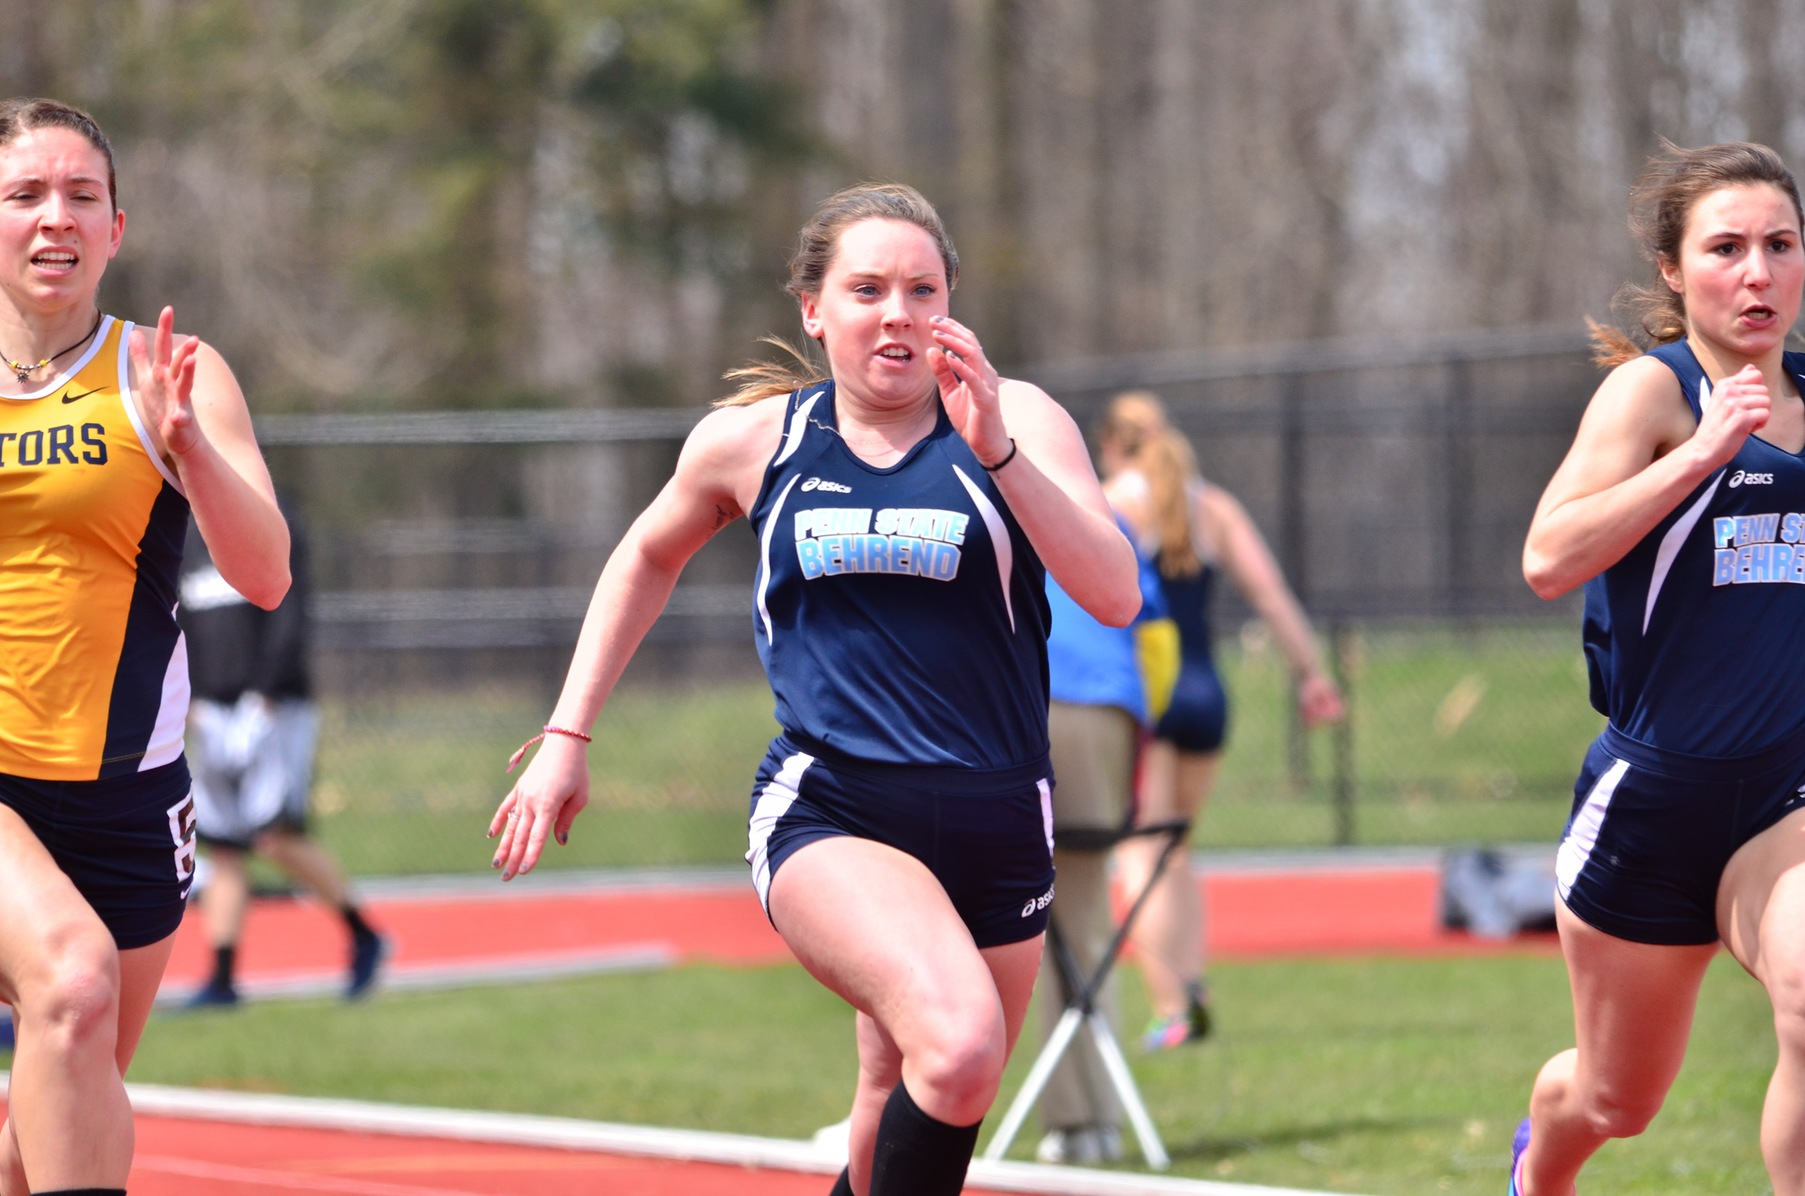 Track and Field Set to Compete in SRU Open Thursday